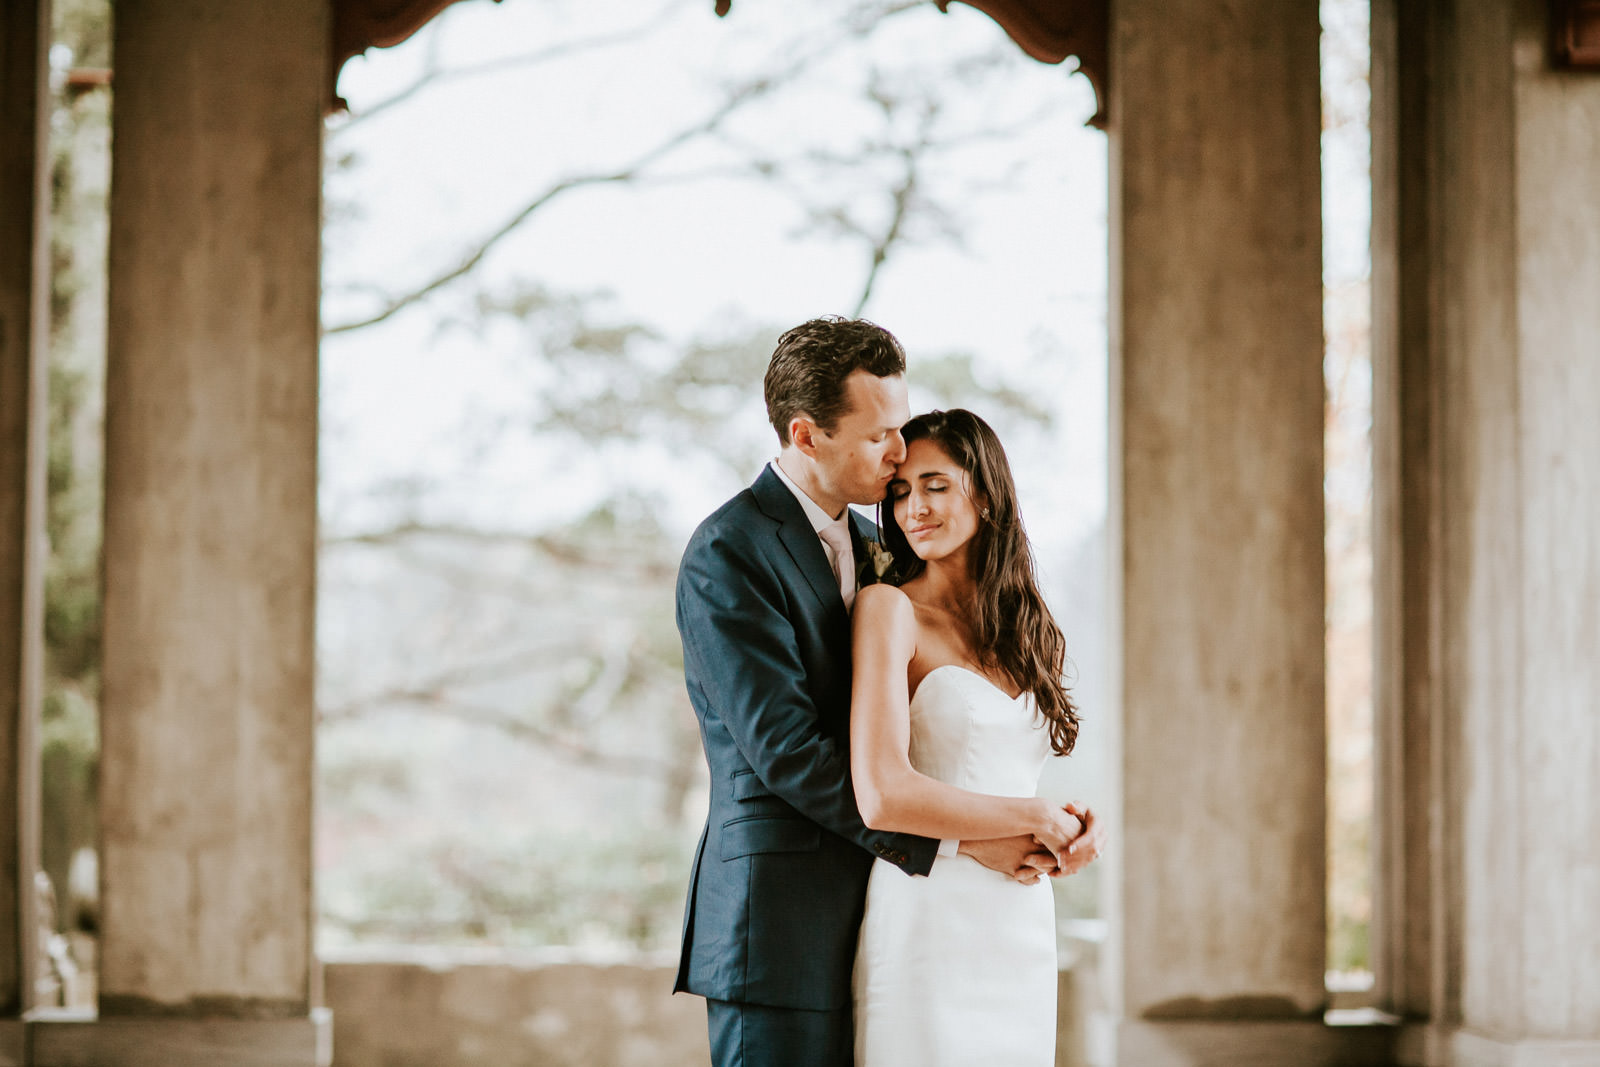 Fine Art portraits of bride and groom taken in Armour House Lake Forest